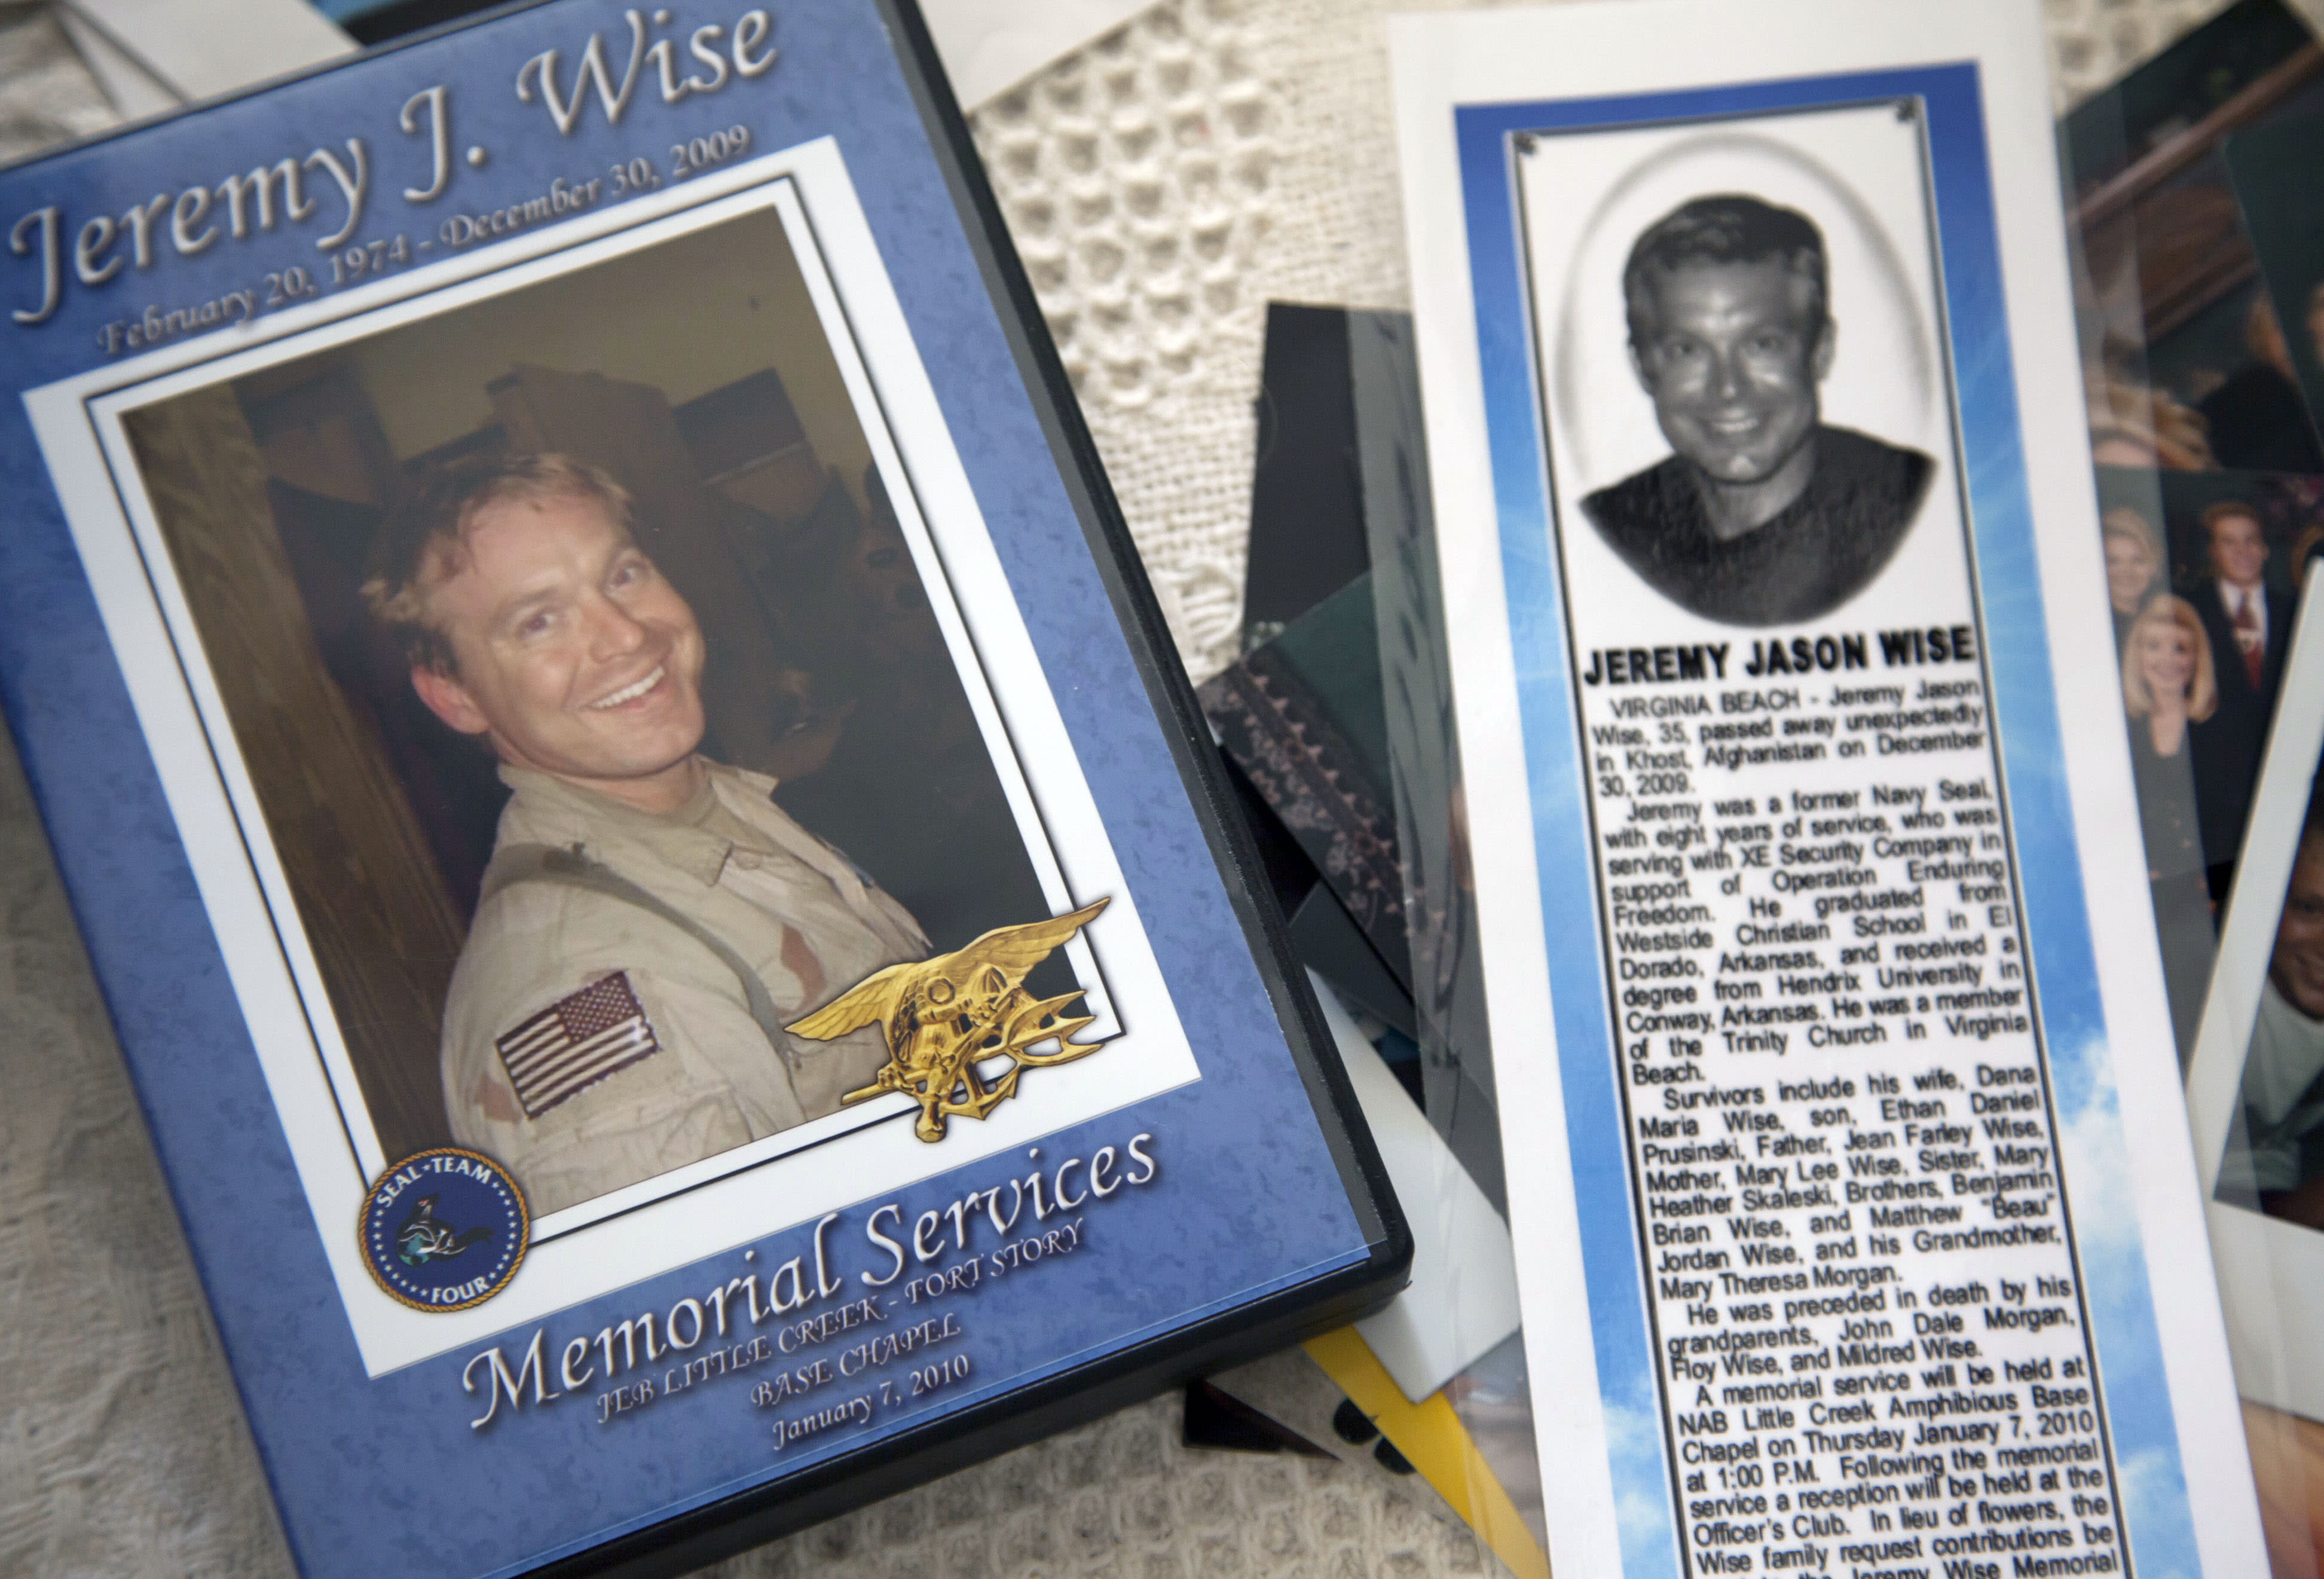 In this photo taken Jan. 24, 2012, the image of former Navy Seal Jeremy Wise is shown on the cover of a video of his 2009 memorial service and a newspaper obit displayed at his sister's home in Prescott, Ark. (AP Photo/Danny Johnston)